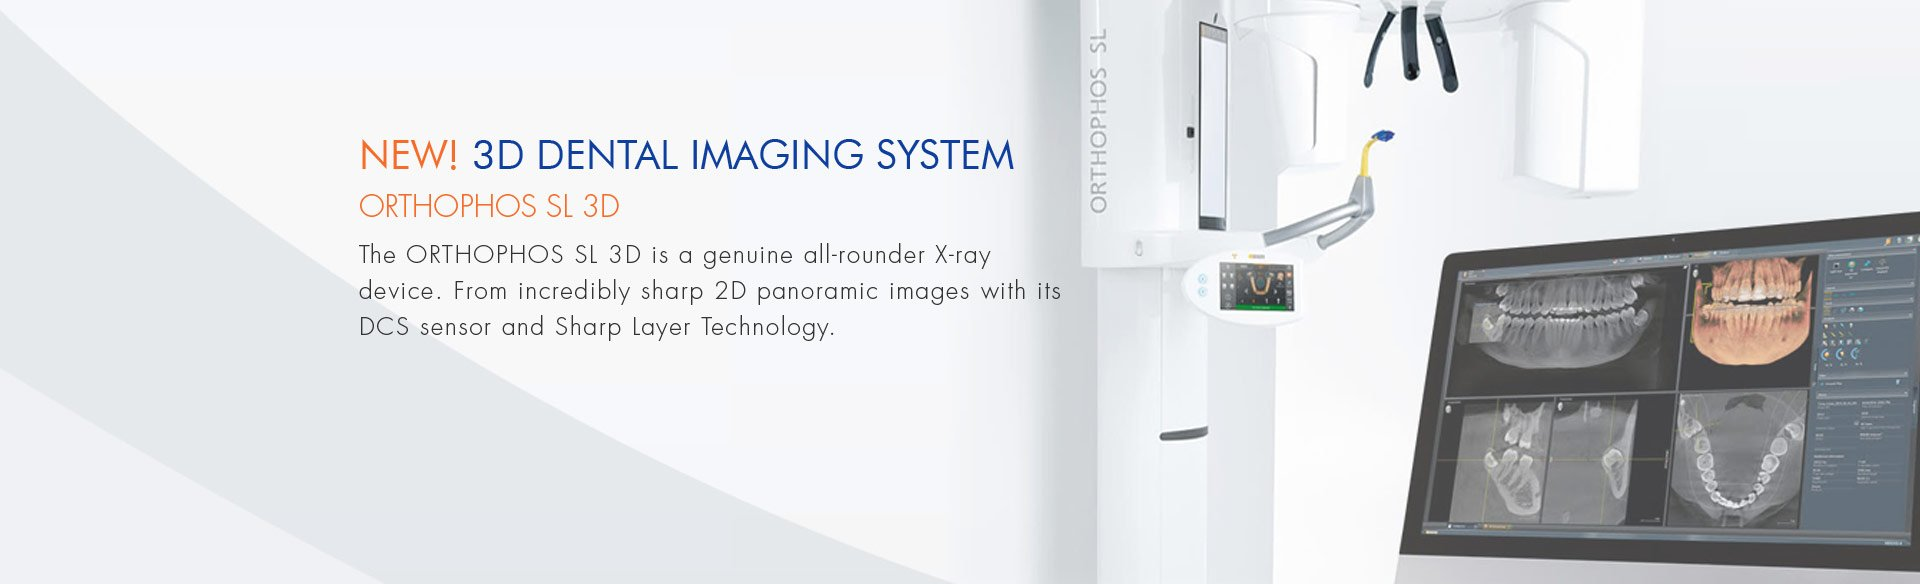 Dr. Carlos Garcia, Bright Smiles Dental Studio Image Of 3D Dental Imaging System